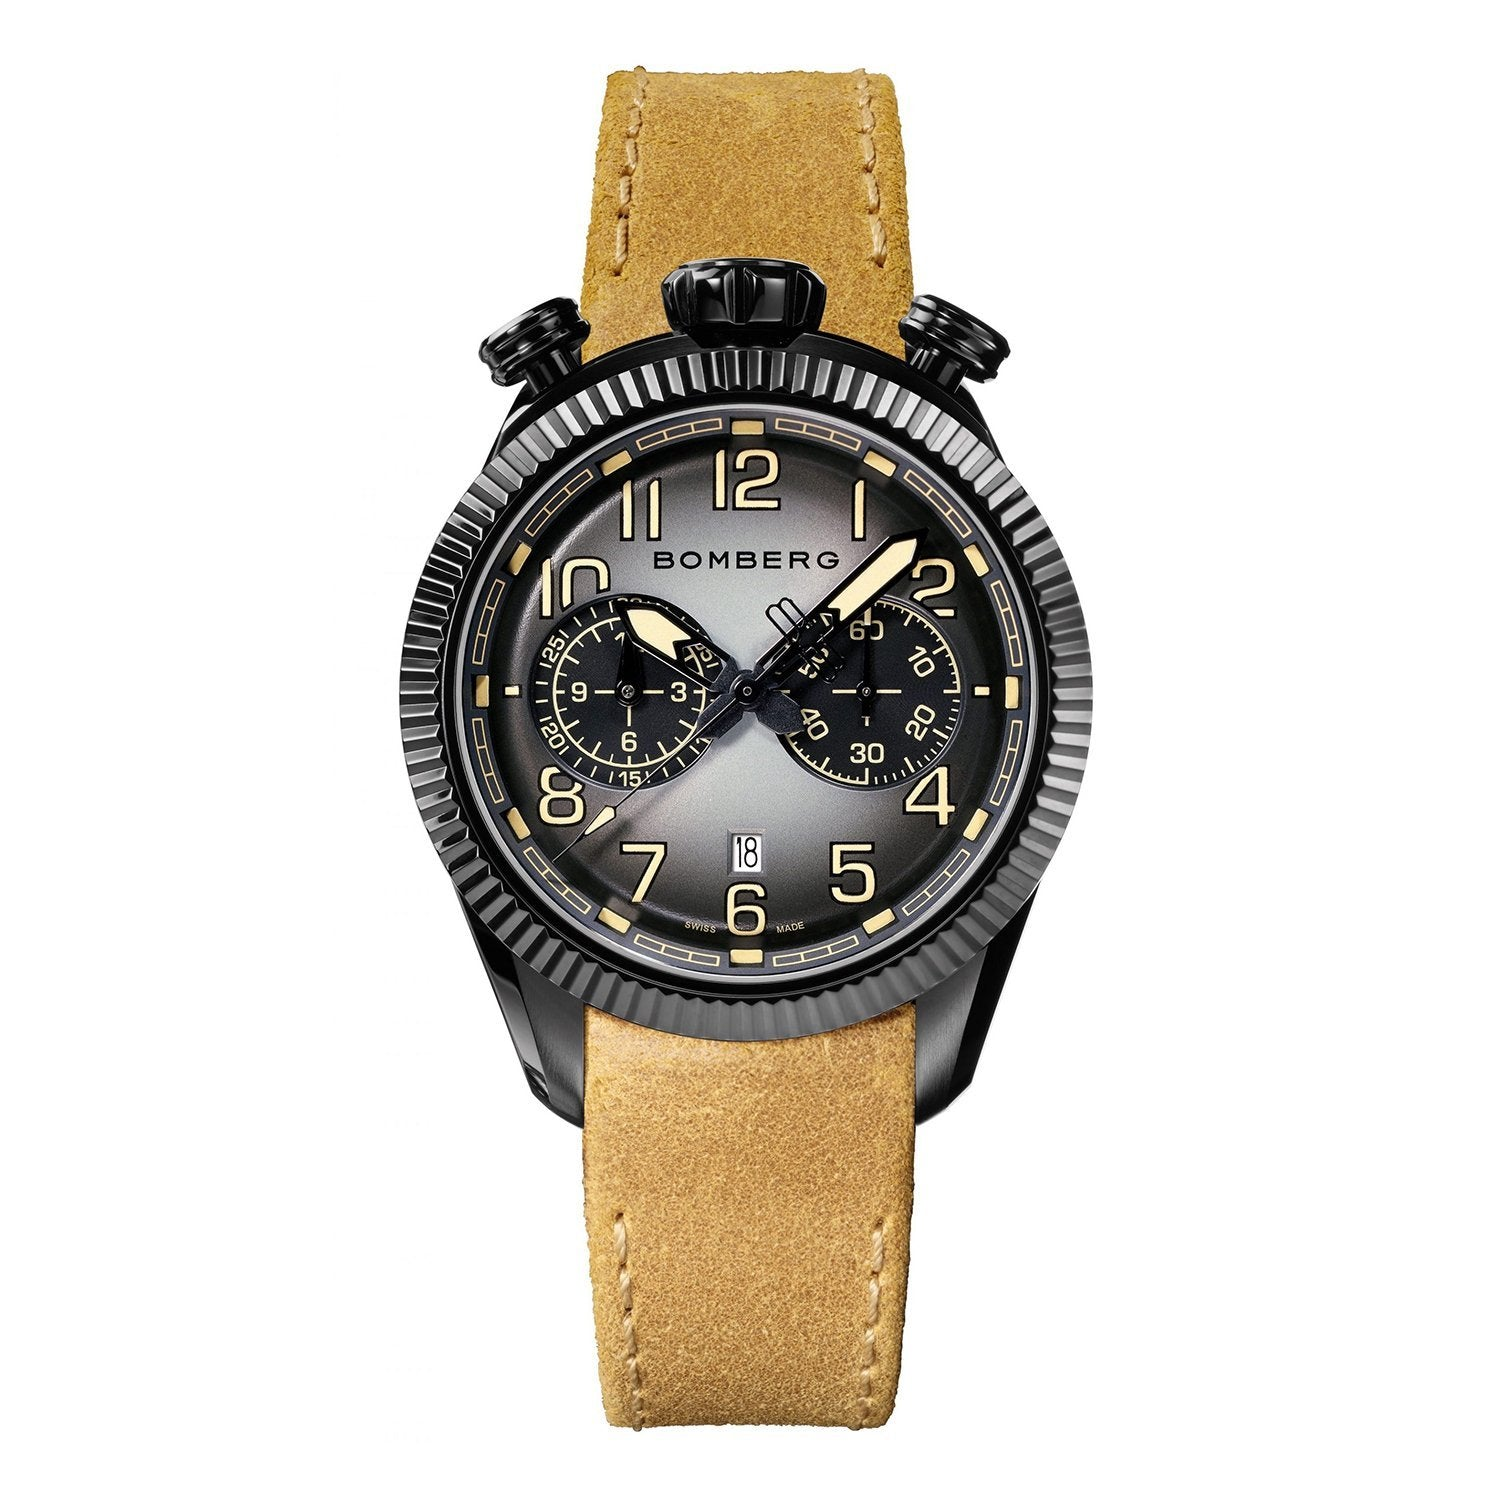 Bomberg BB-68 VINTAGE Chronograph Black PVD - Watches & Crystals